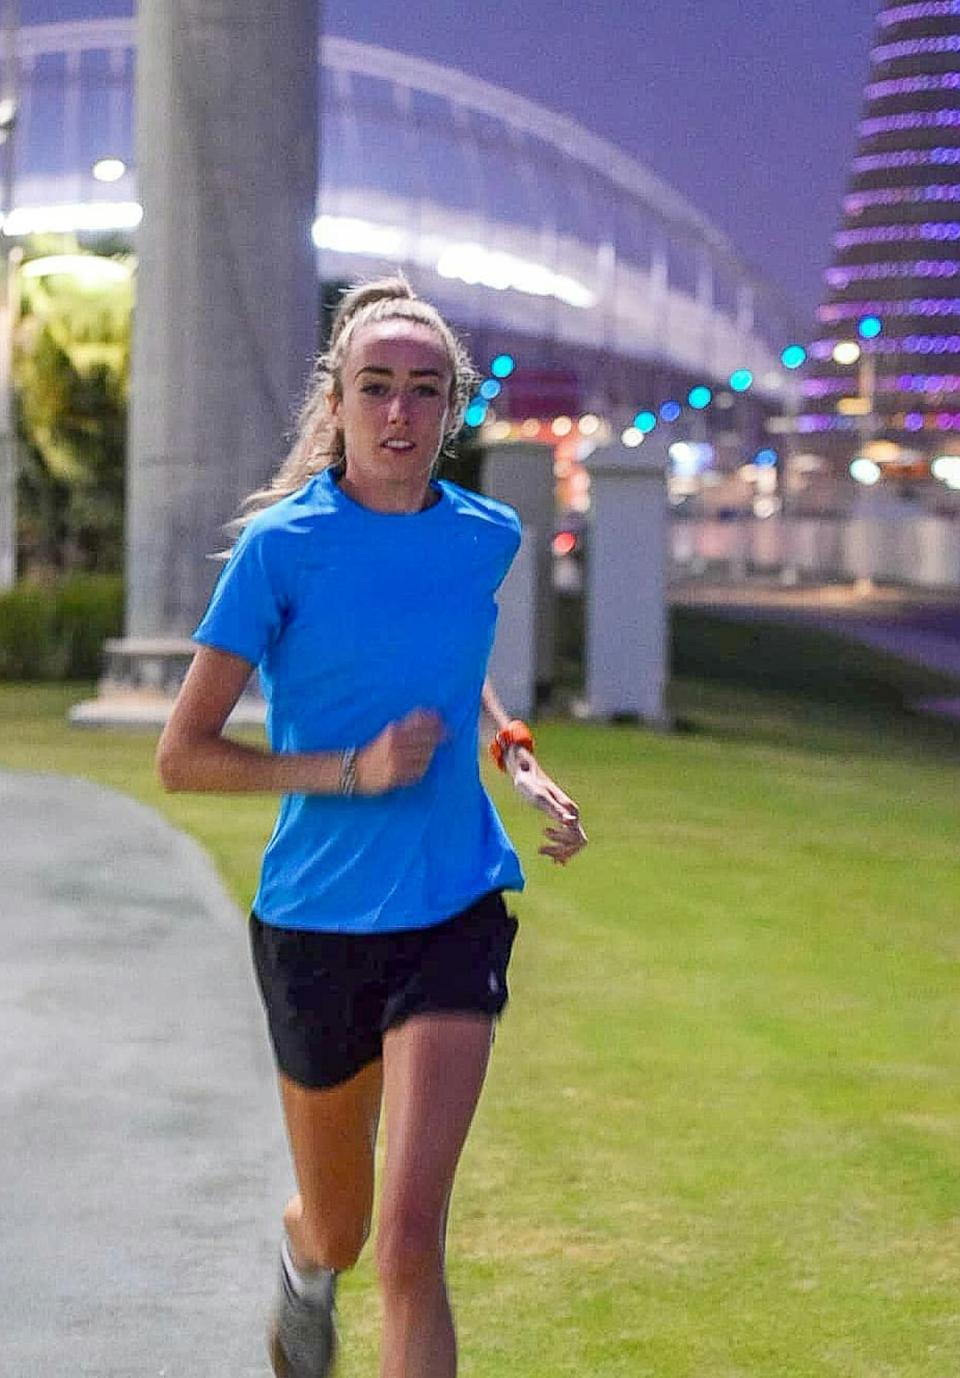 McColgan will be competing in the 5000 metres at the World Championships.